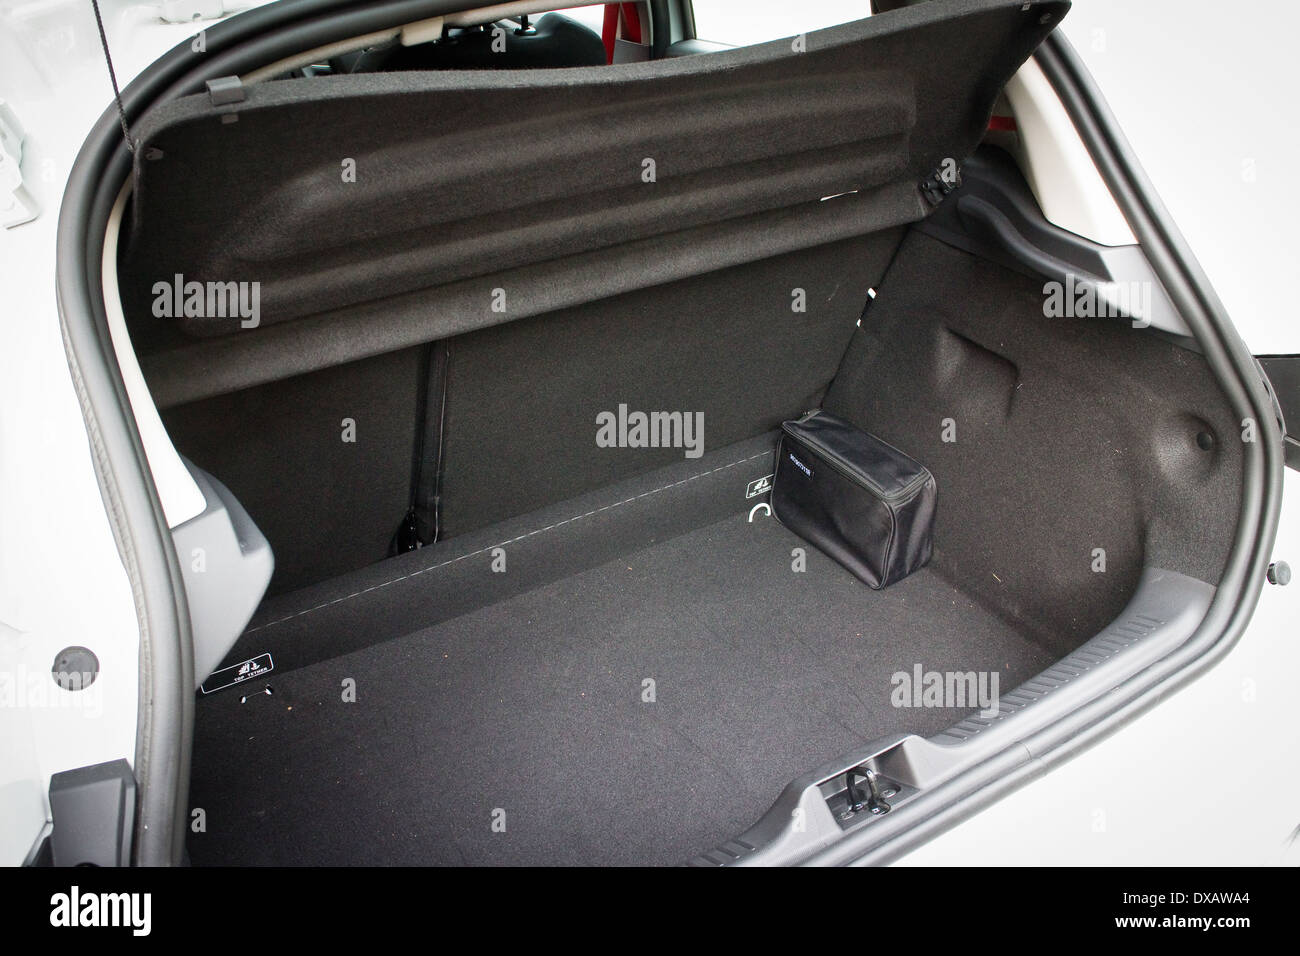 Renault Clio RS Trunk - Stock Image